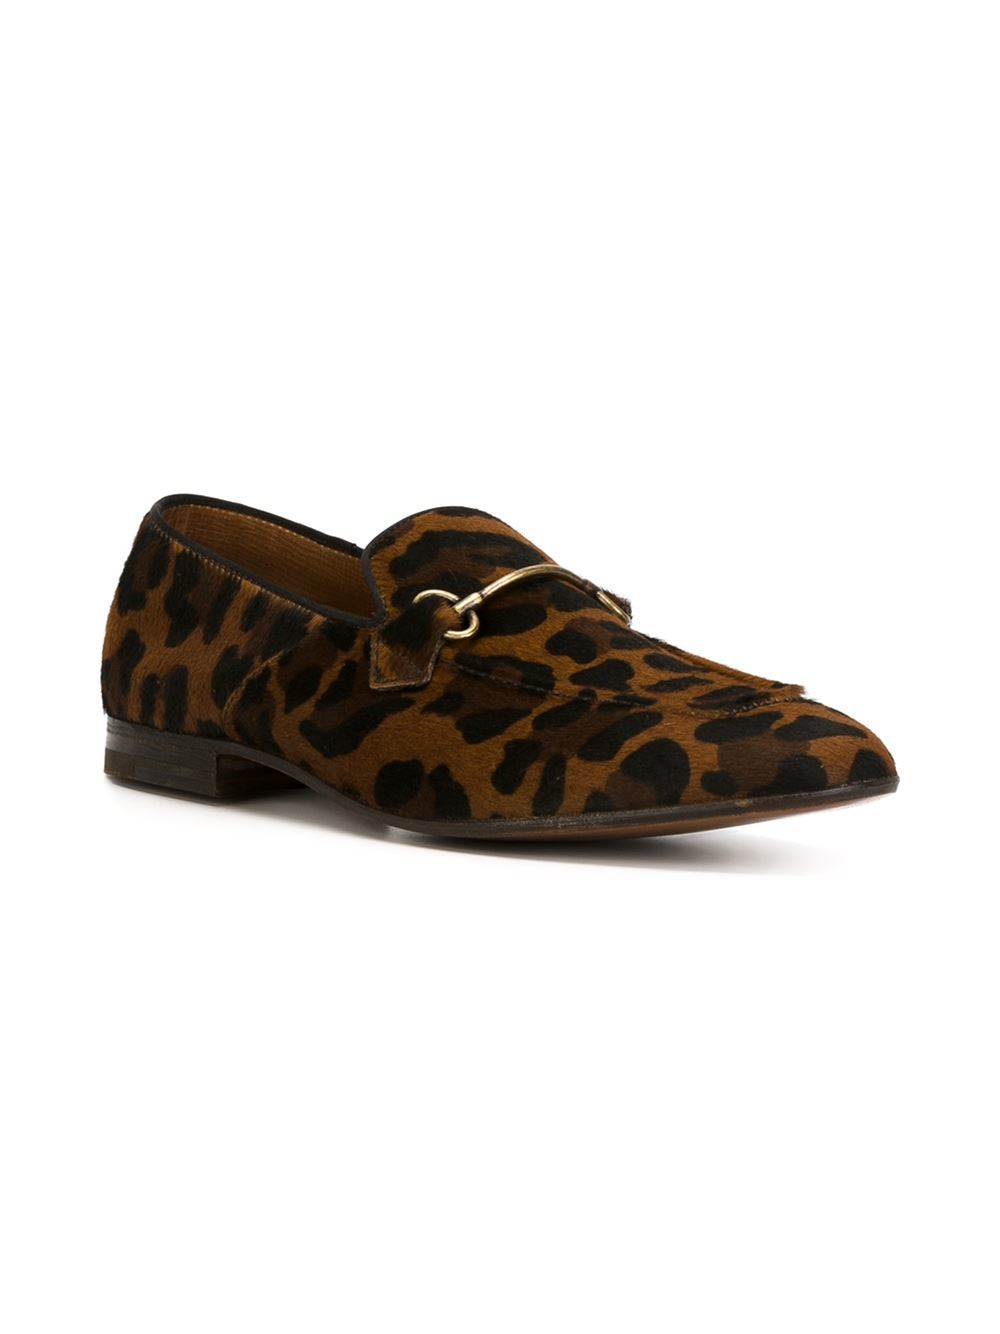 Henderson Cammello Animal Print Loafers In Brown For Men